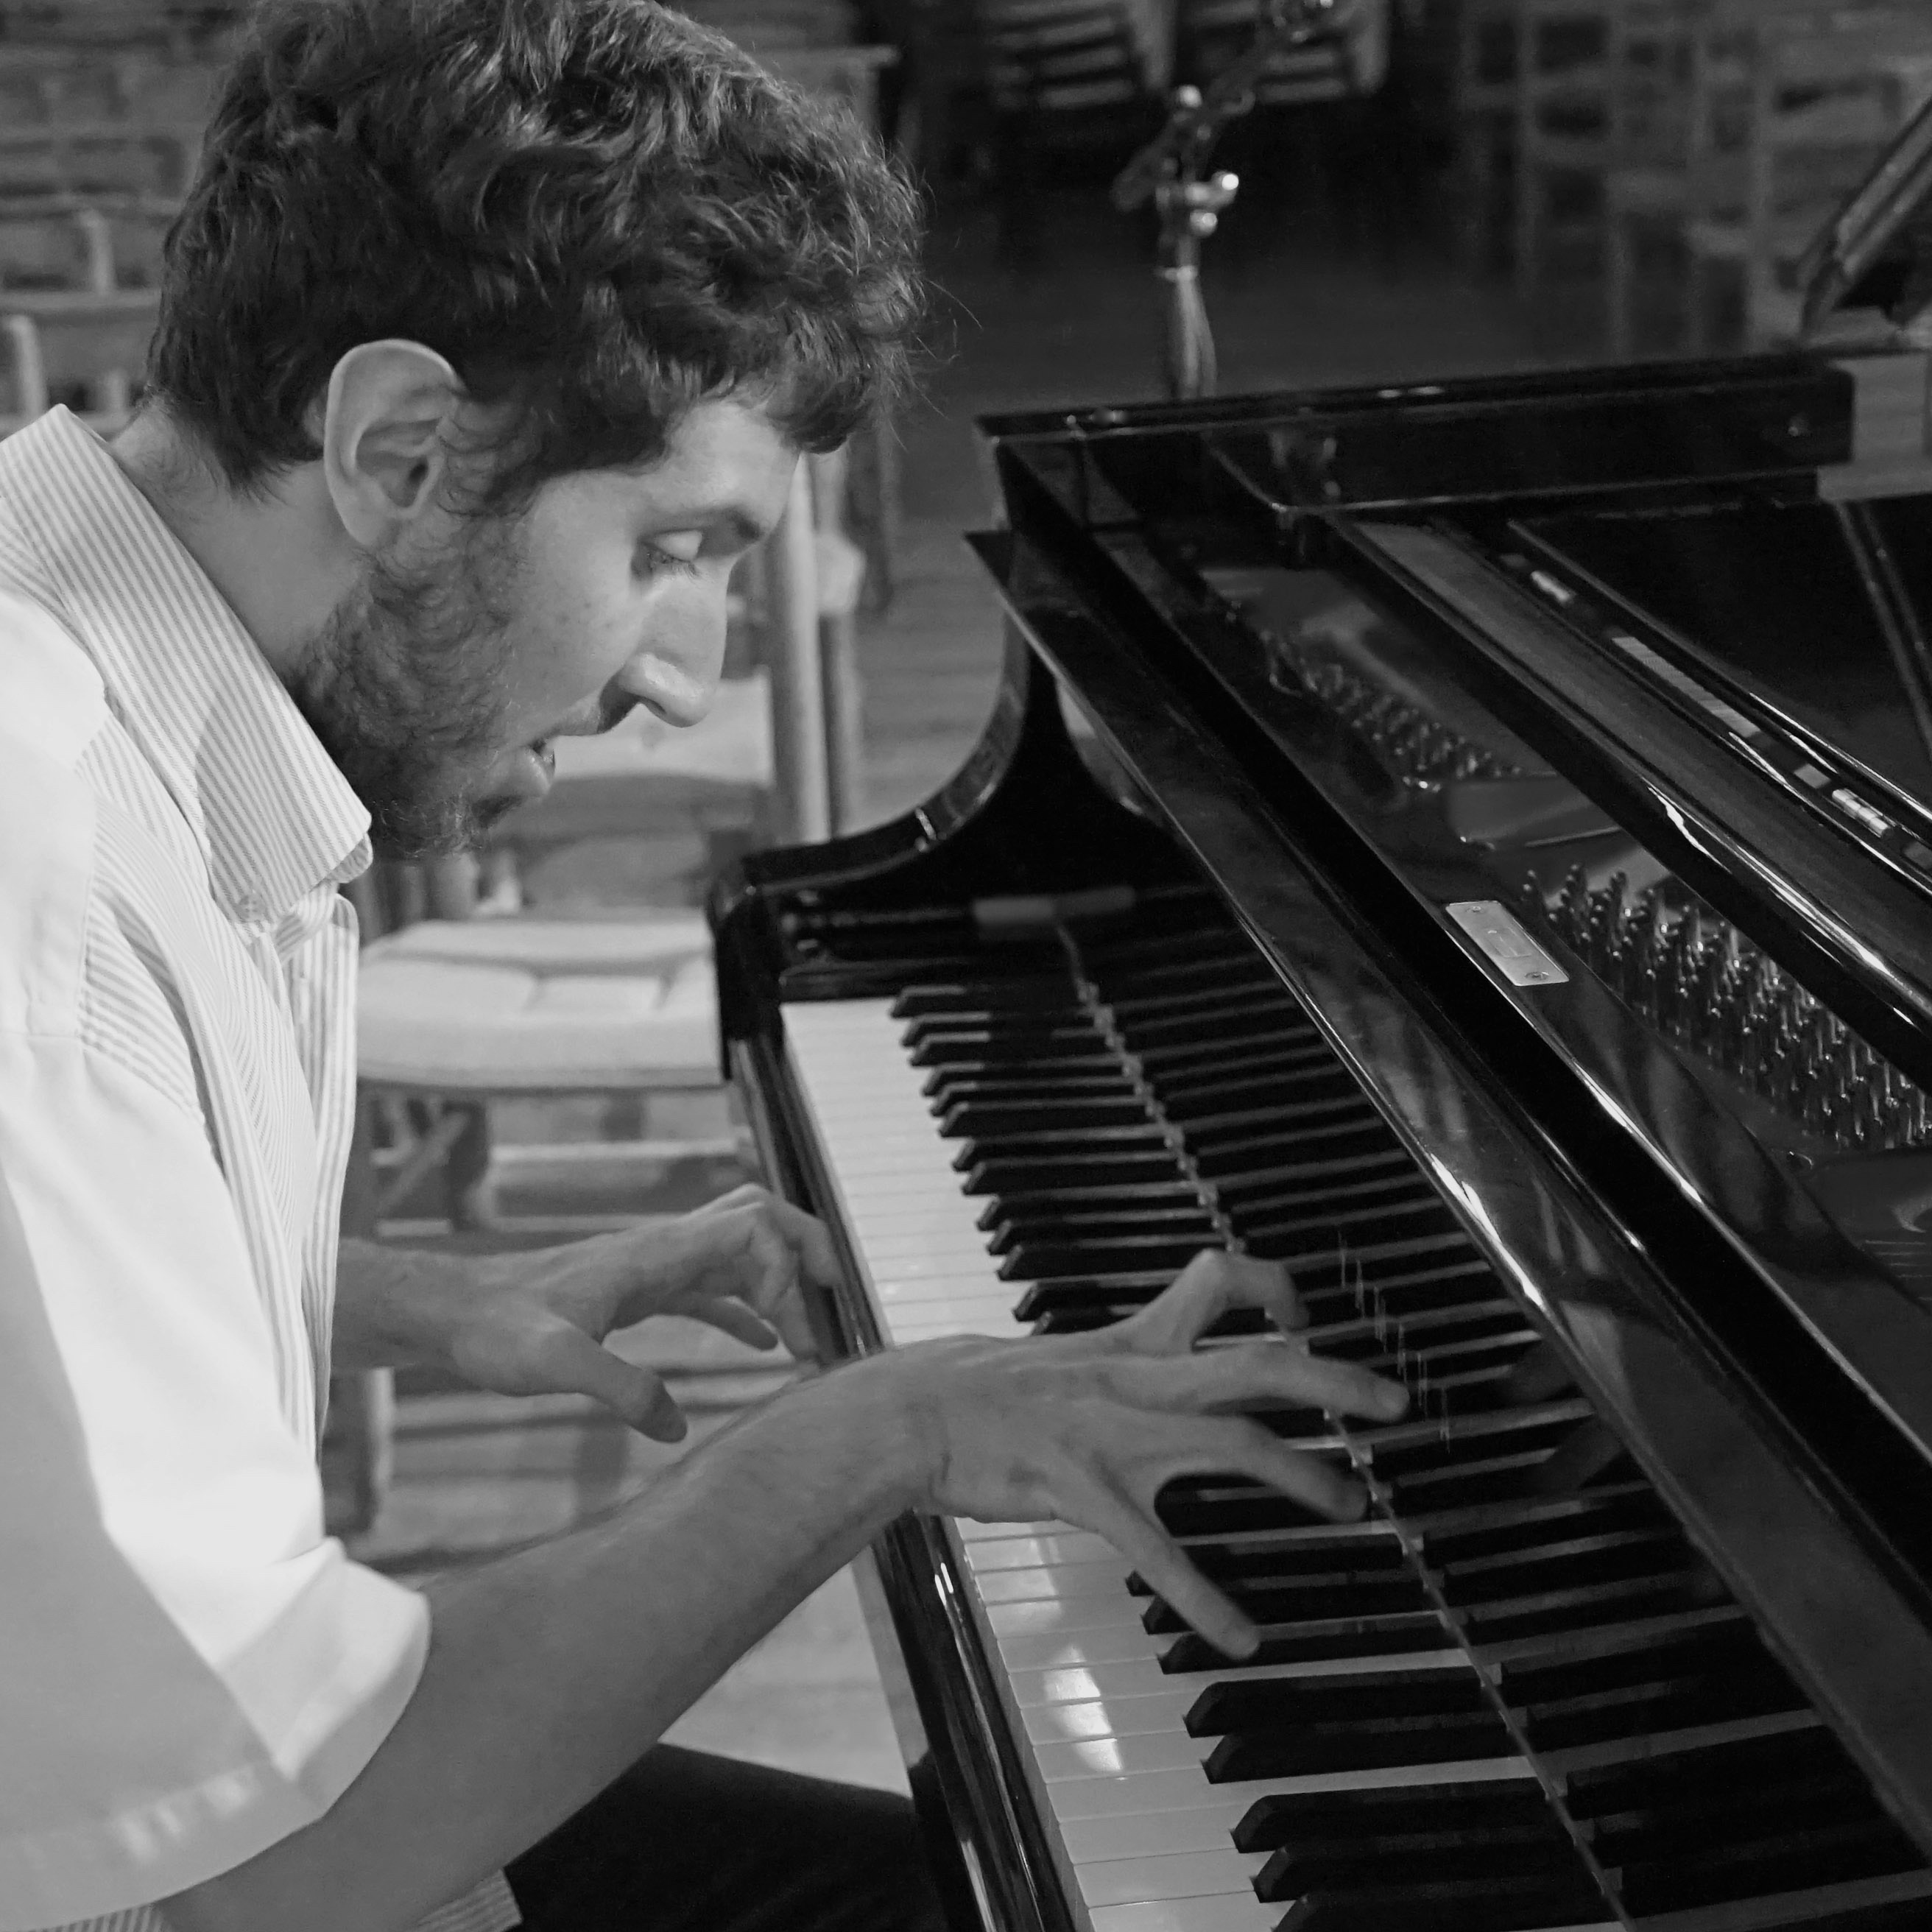 Corentin Boissier at the piano, 2019